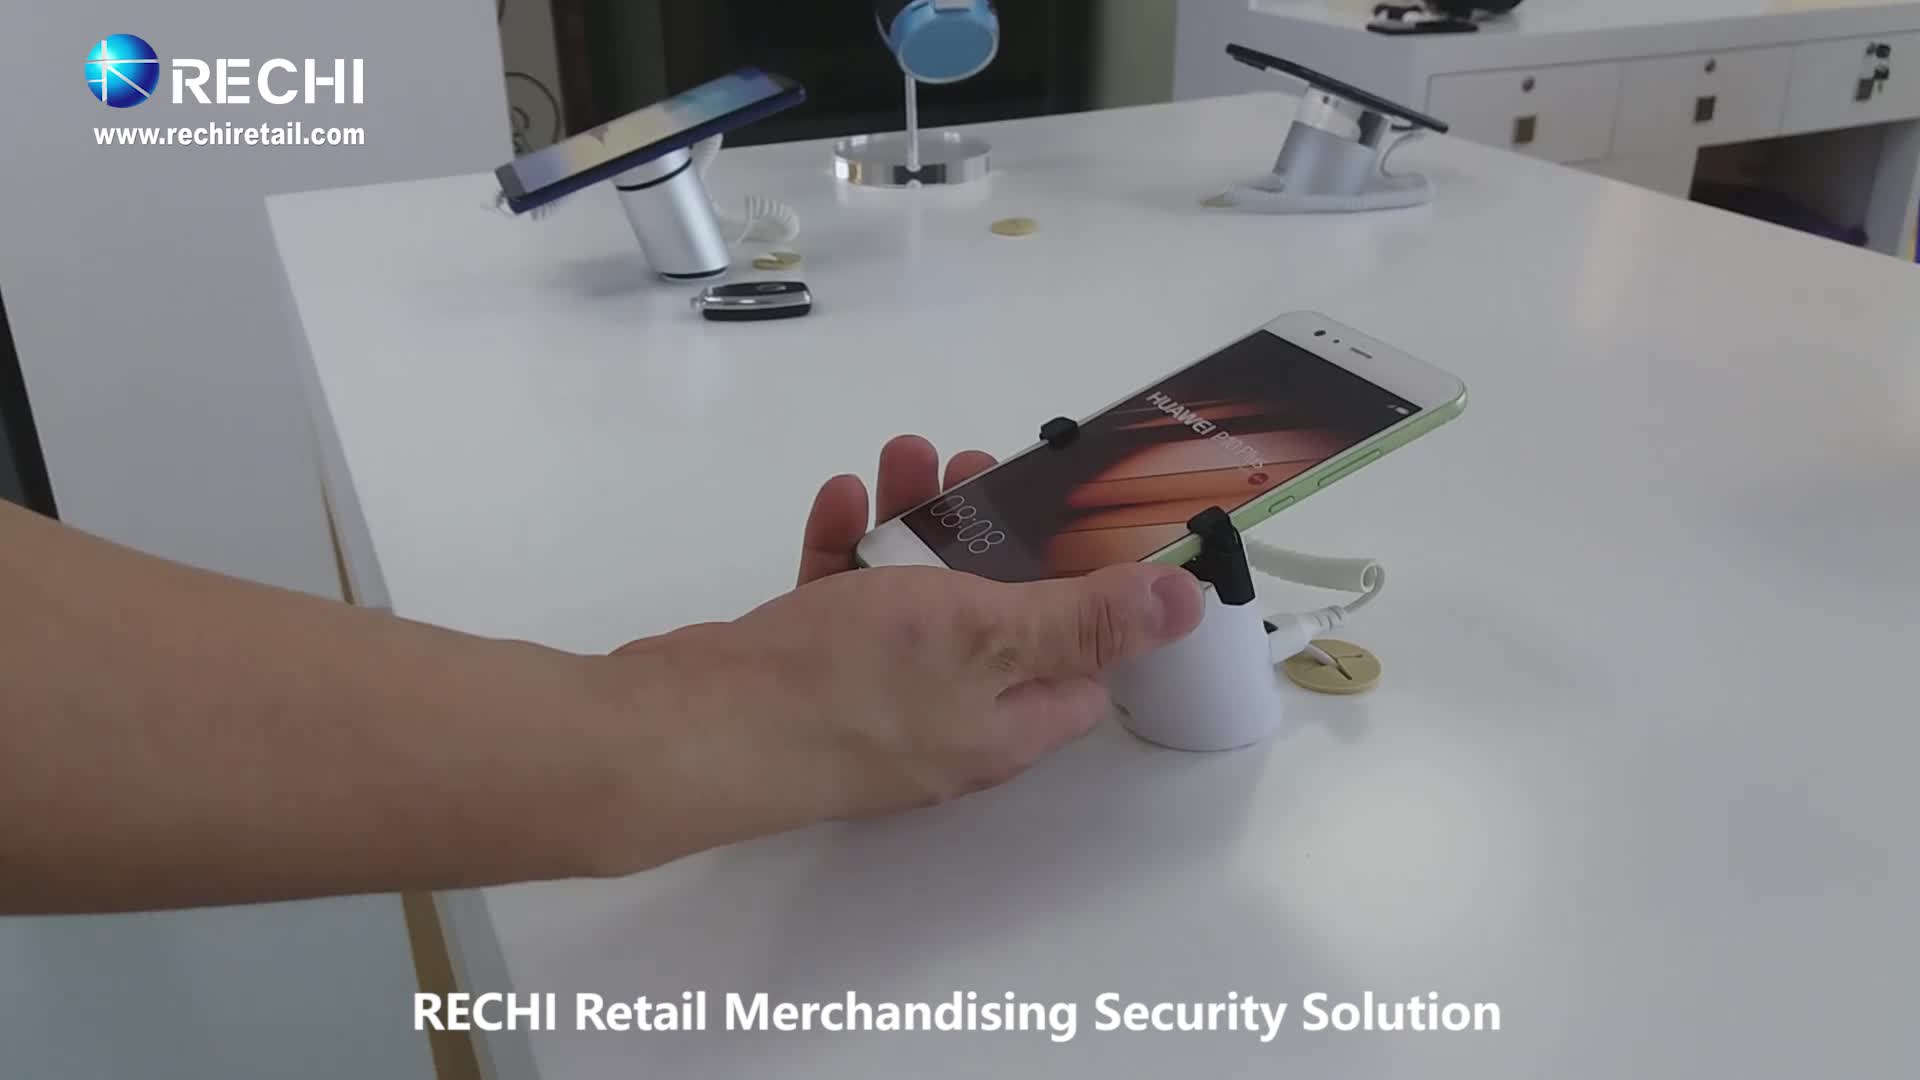 RECHI Retail Display Security Stand With Gripper and Charger Alarm Function for Cell Phone Protex S7